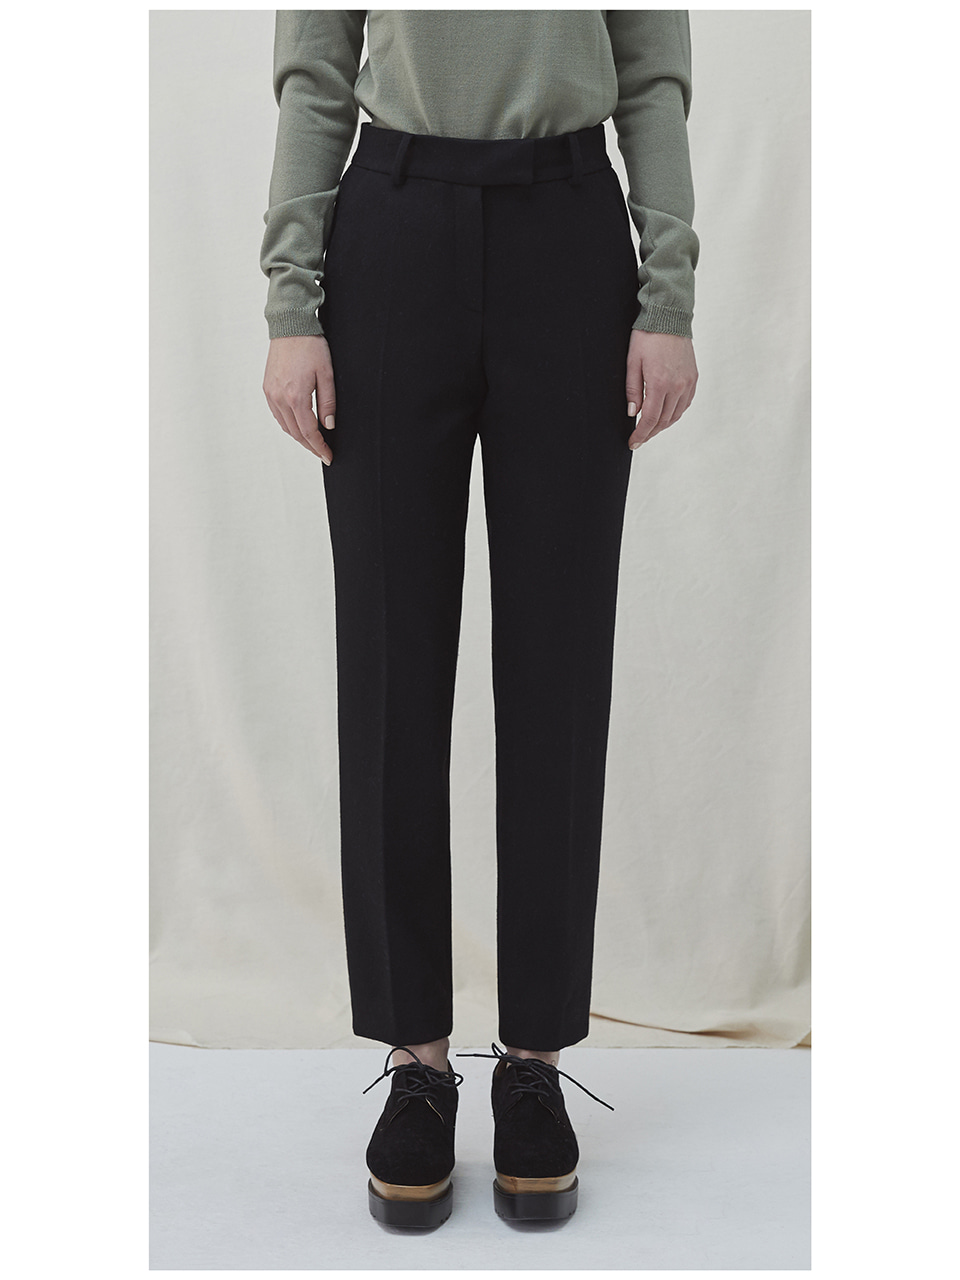 Embroidered Wool Pants - black